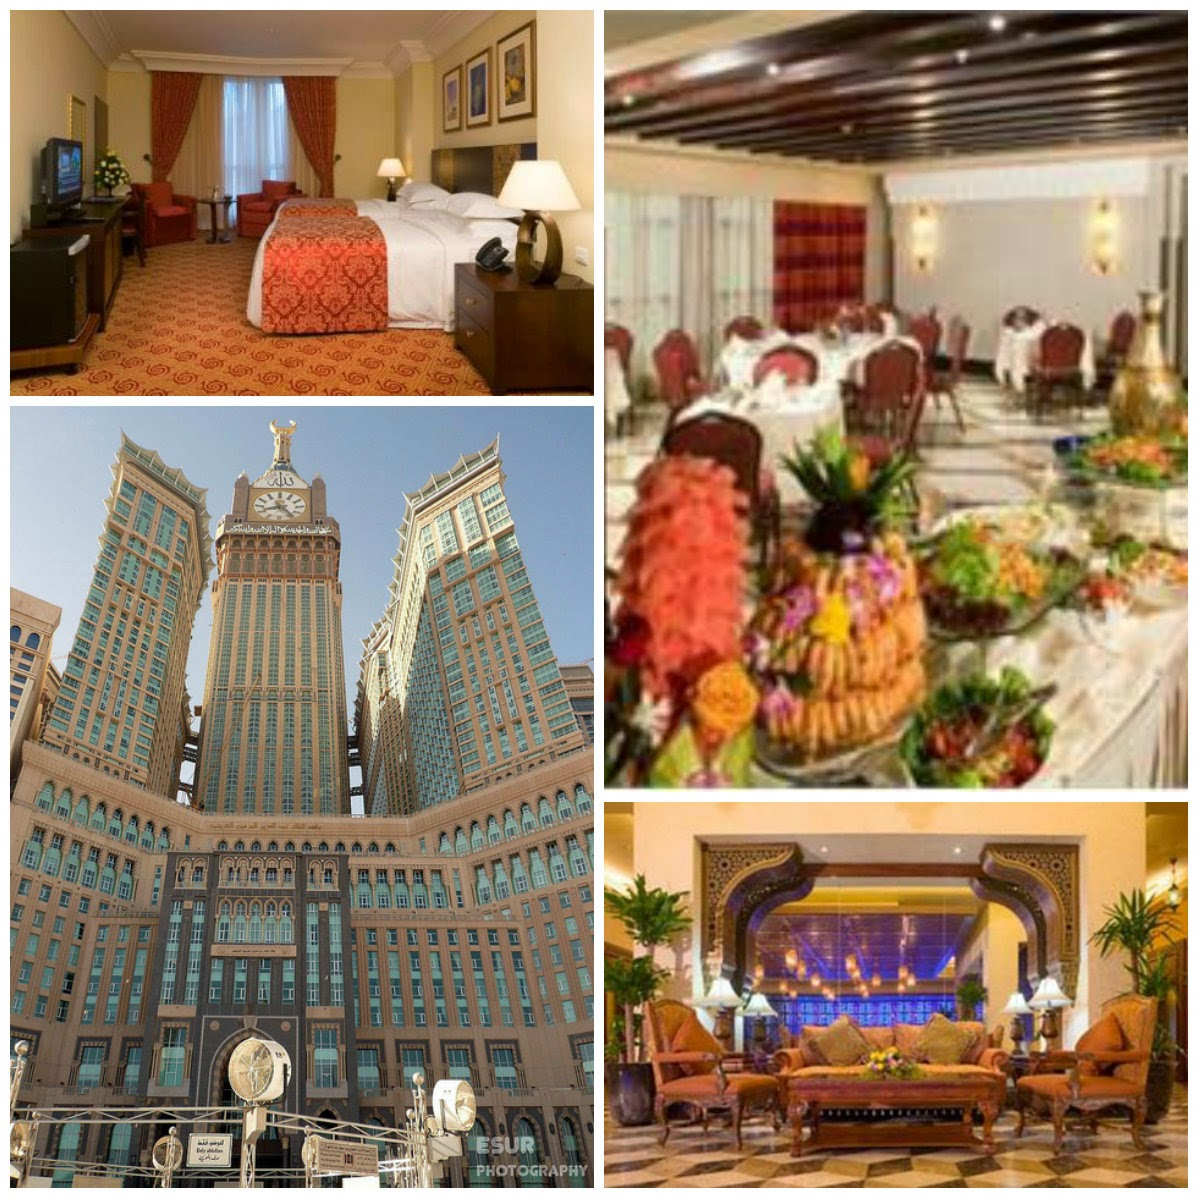 Al Mukhtara International Hotel Mabruro Tour Travel Delta Sari Hotel Grand Zam Zam Di Makkah